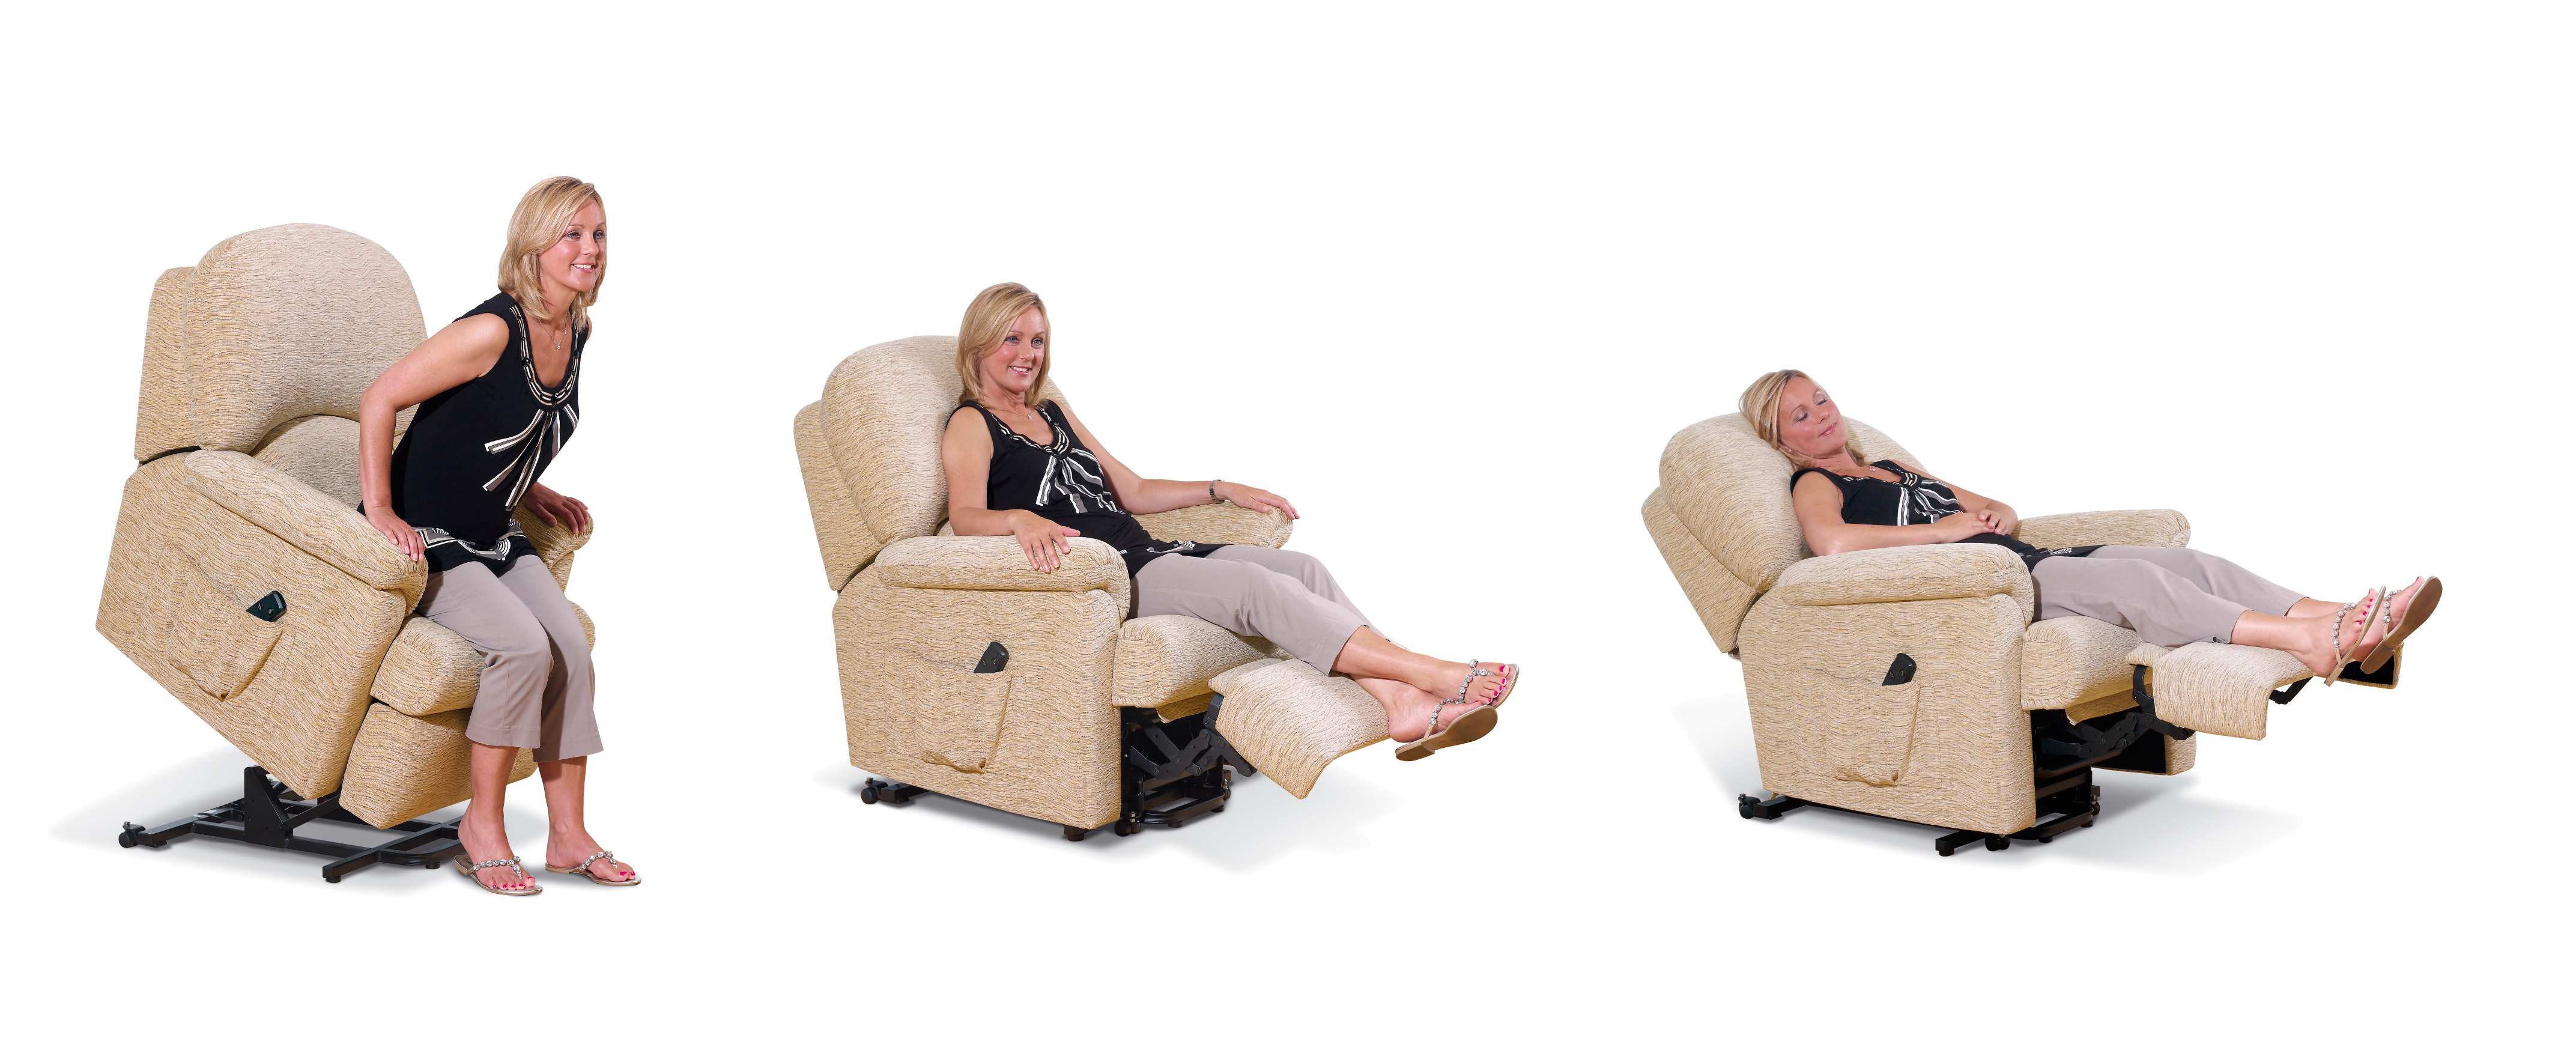 Riser recliner chairs and seats for the elderly